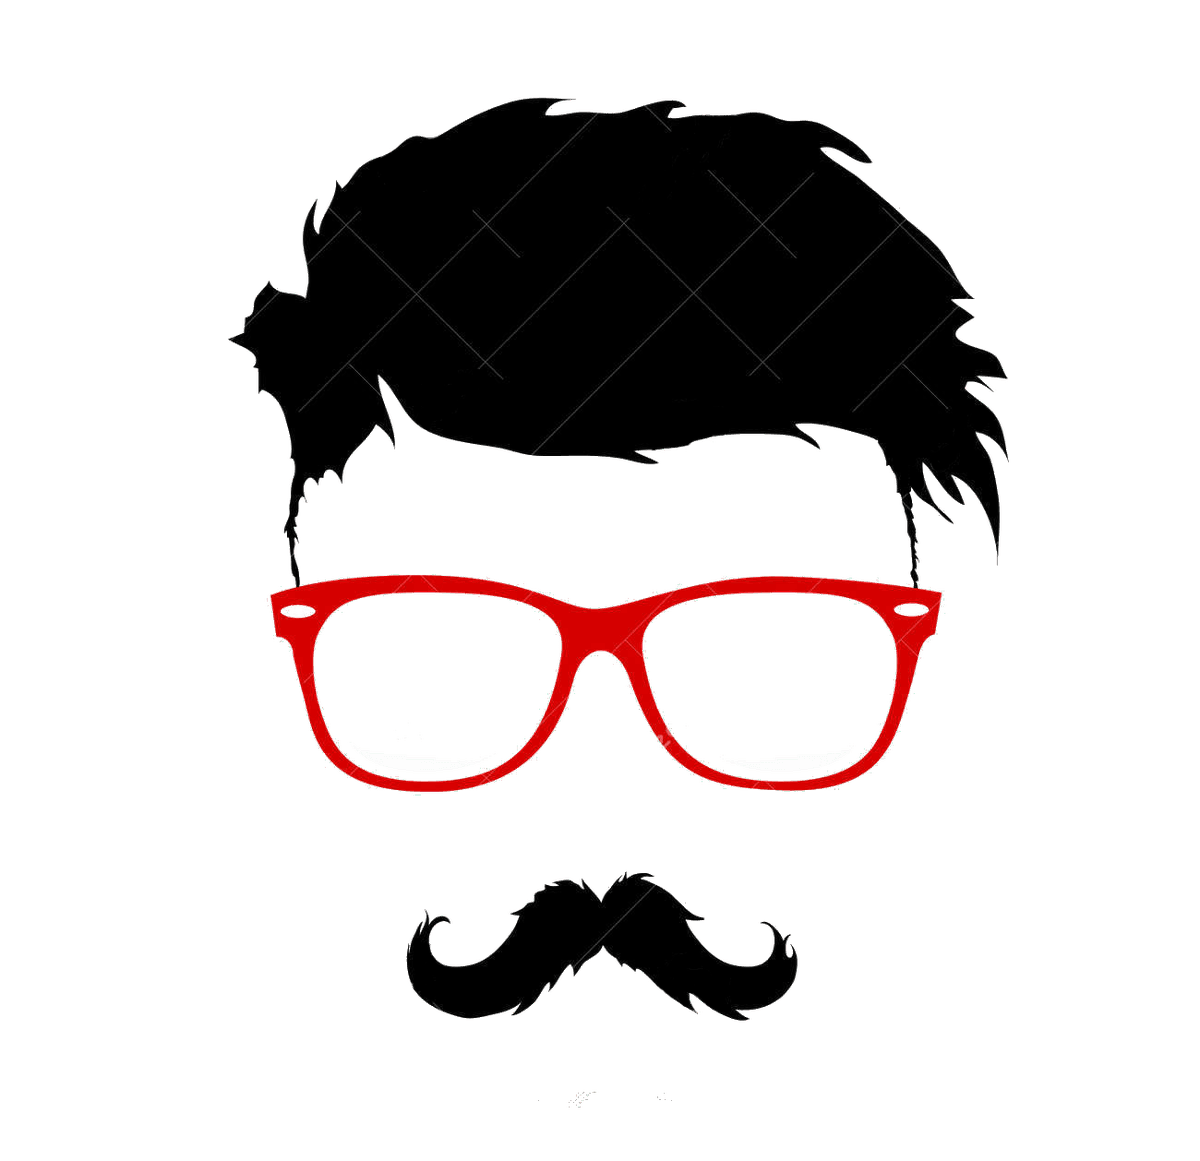 hight resolution of hairstyle vector bun graphics moustache beard clipart